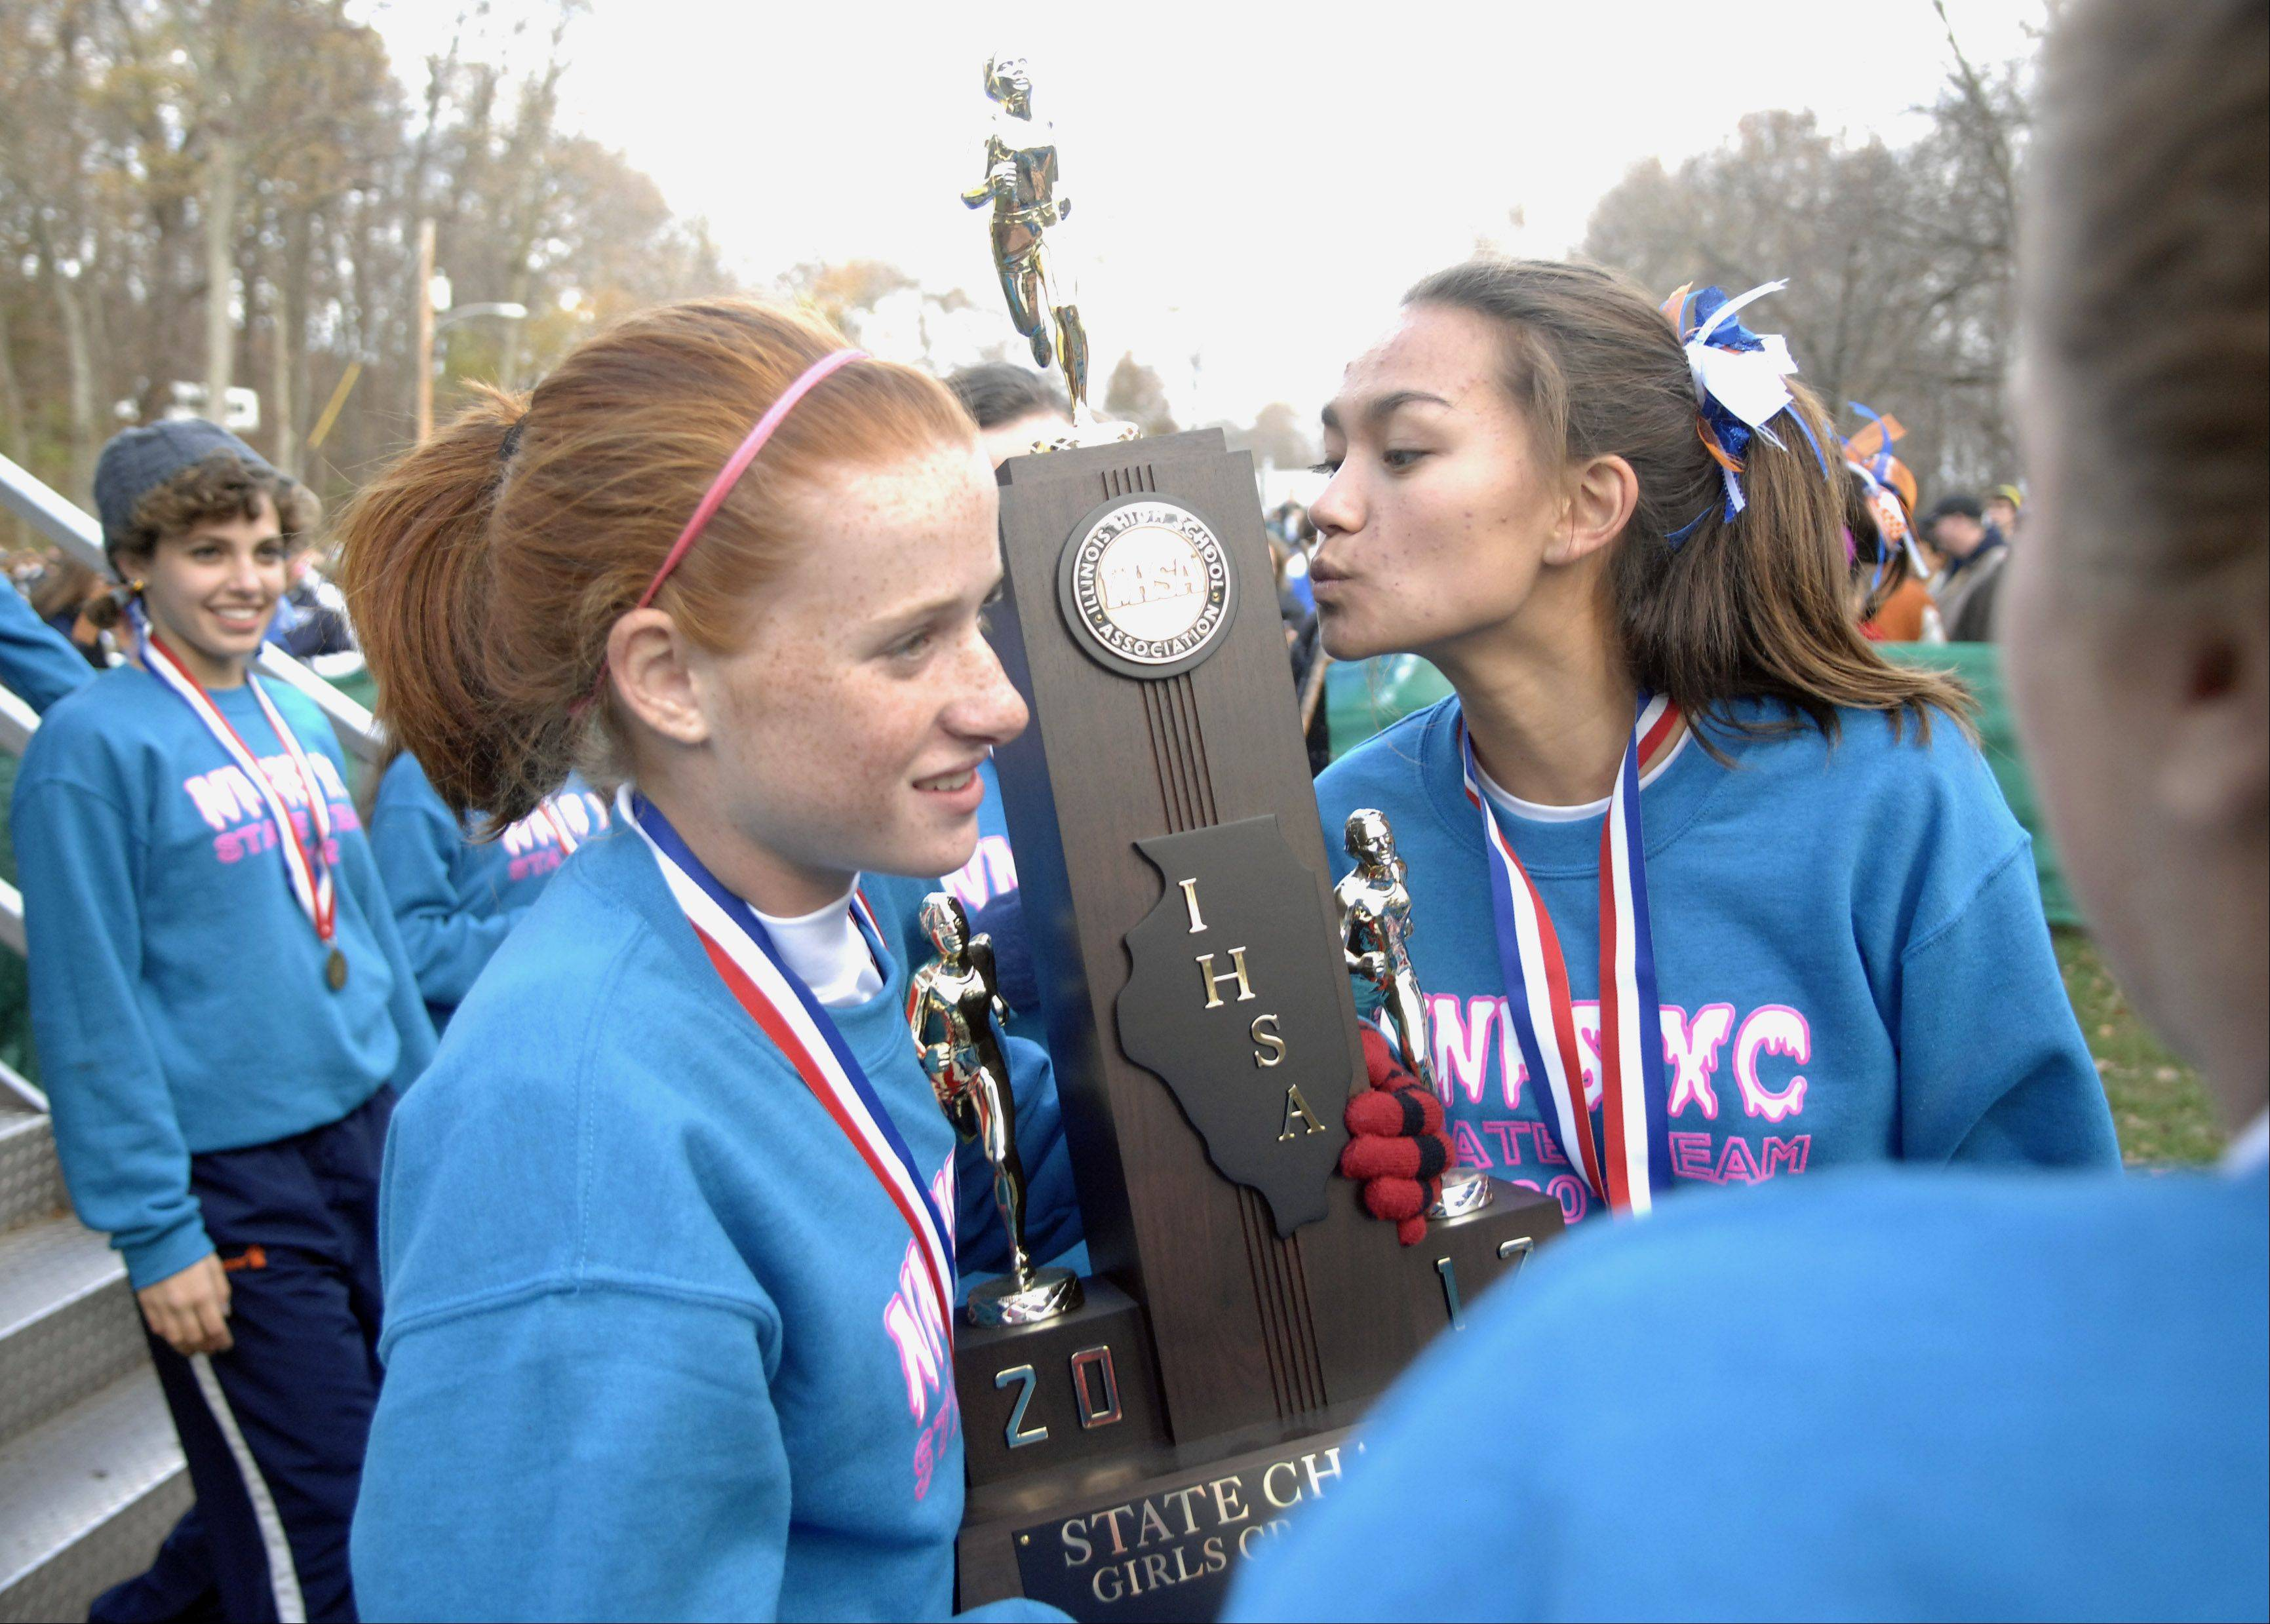 Naperville North's Allison Ray leans in to kiss the team's first place 3A trophy while carrying it with teammate Judy Pendergast during the awards ceremony at the cross country state finals in Peoria on Saturday, November 3.